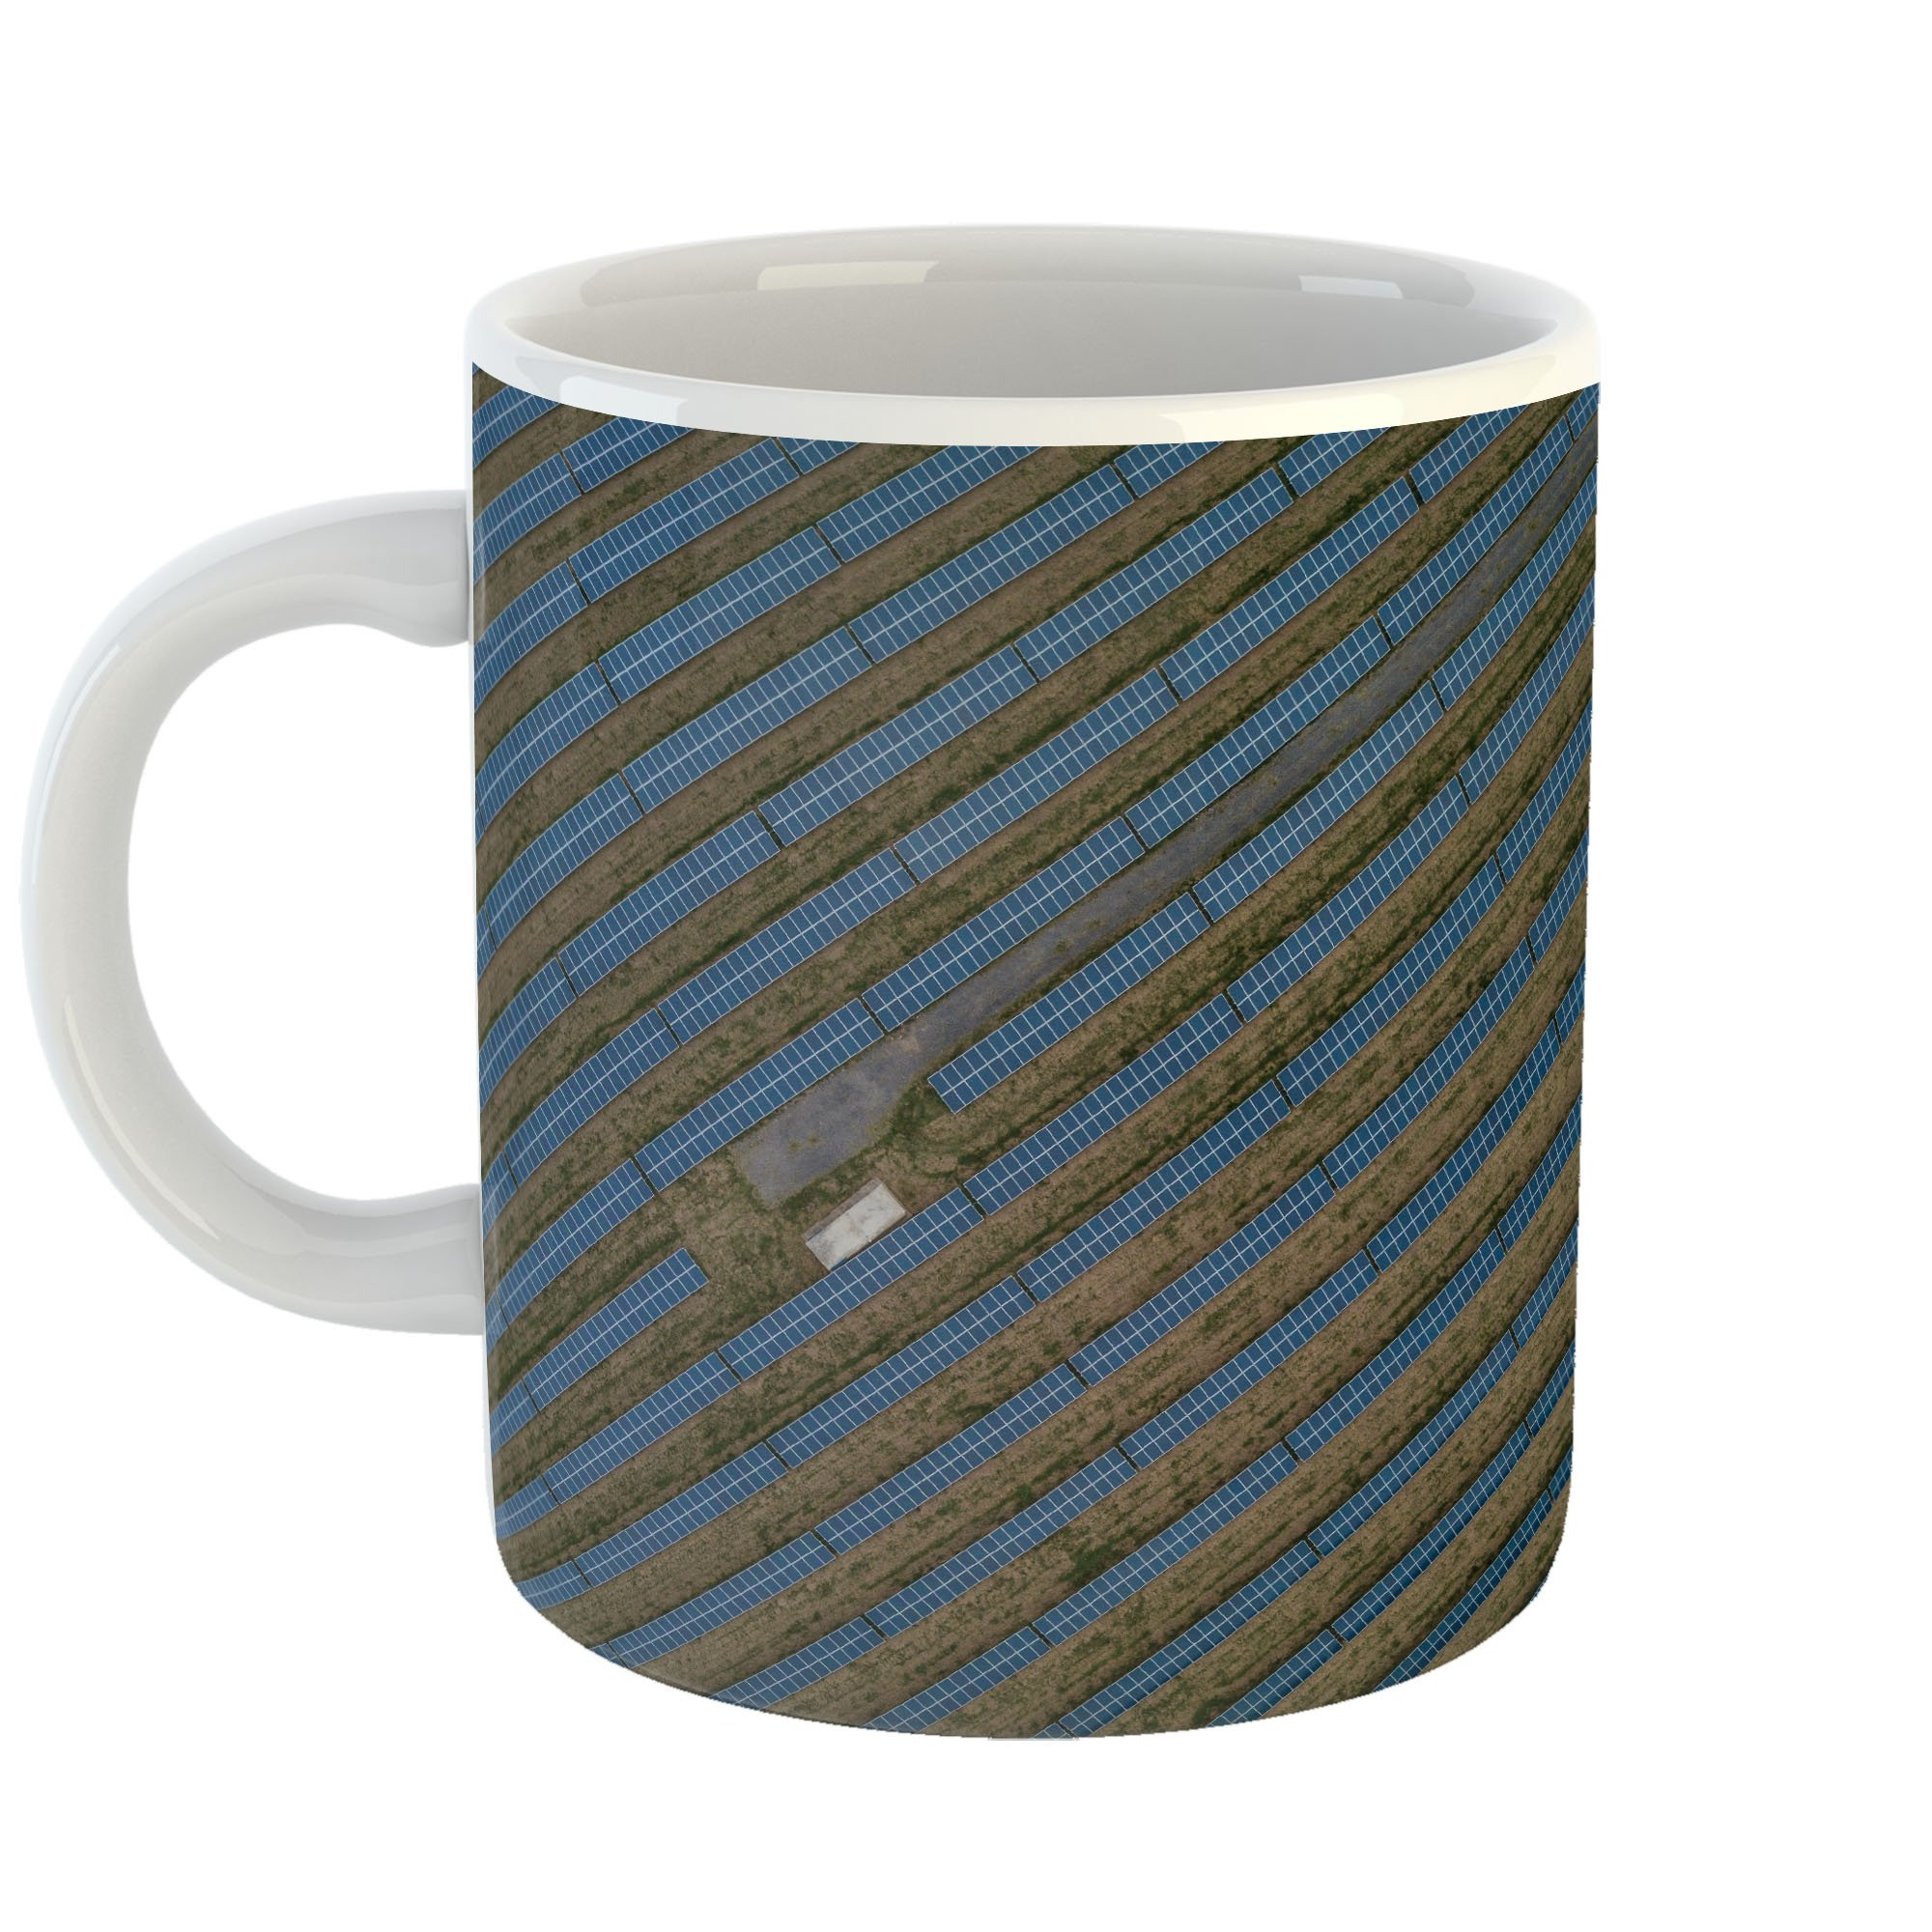 Westlake Art - Blue Solar - 11oz Coffee Cup Mug - Modern Picture Photography Artwork Home Office Birthday Gift - 11 Ounce (5100-E4072)